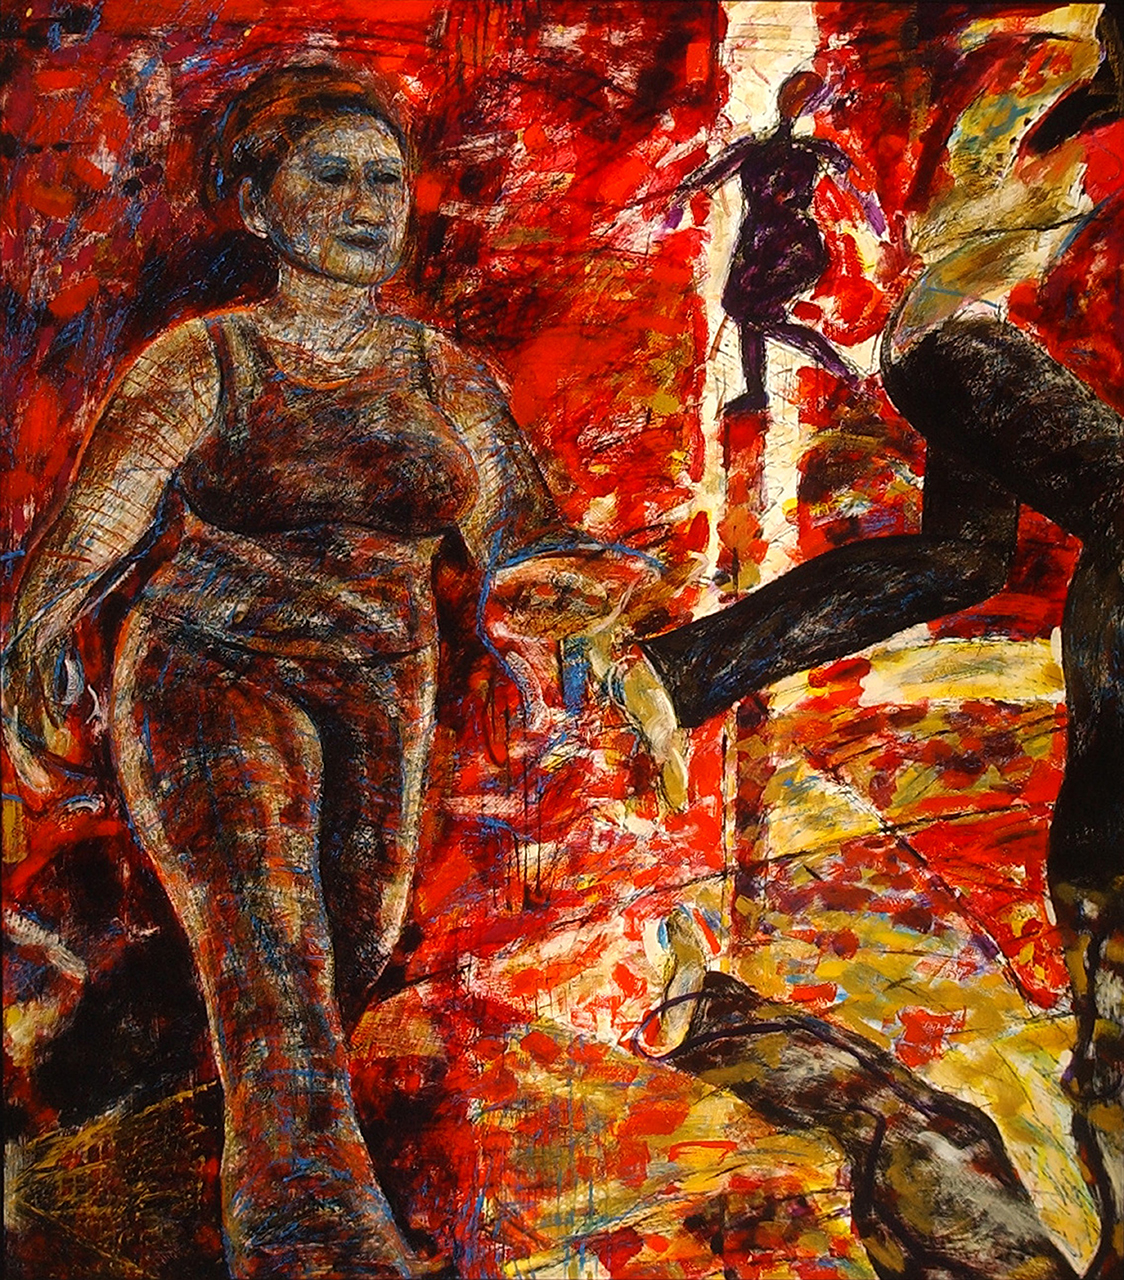 Louise-Hall-Walking-Woman-series-I,-2003-oil-on-board-152-x-134-cm-web